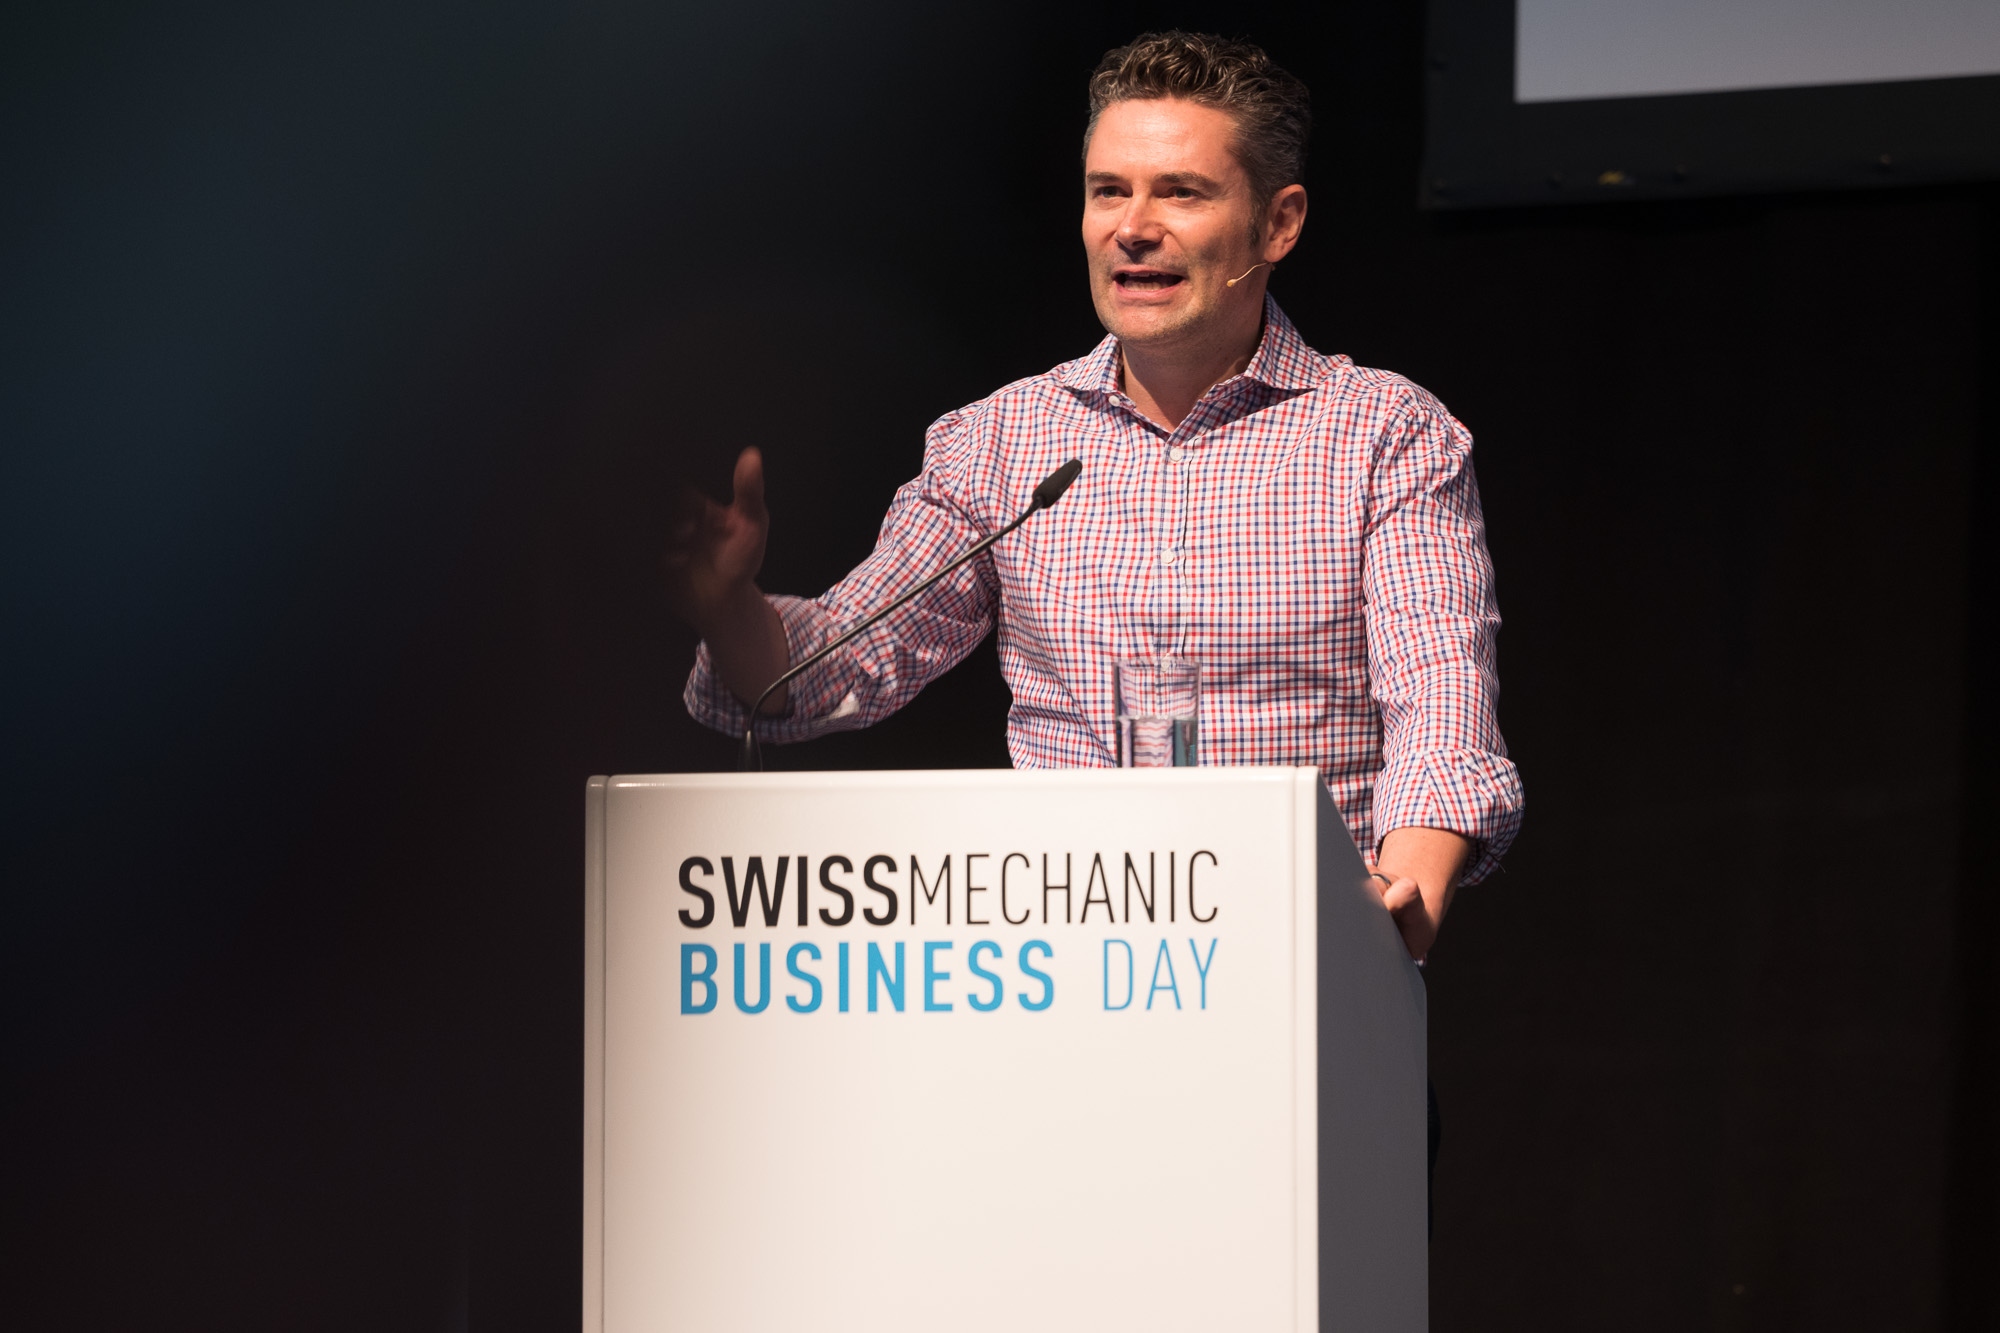 20170914_swissmechanic_businessday_P1050426.jpg